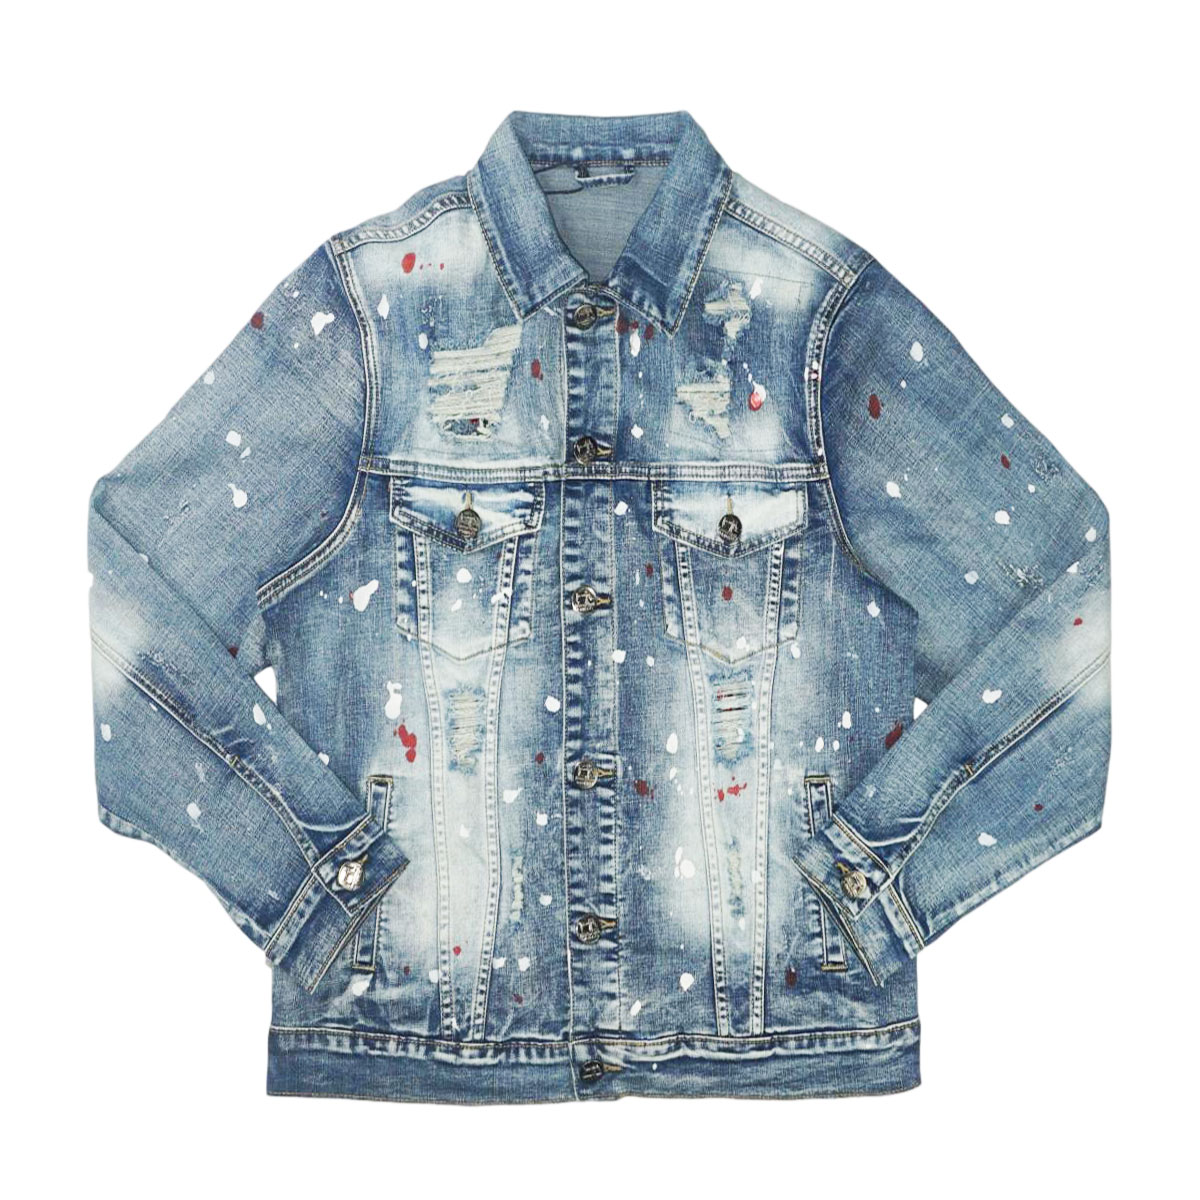 Atlantas Premium Denim Jacket w/ Stones (Blue) /D6